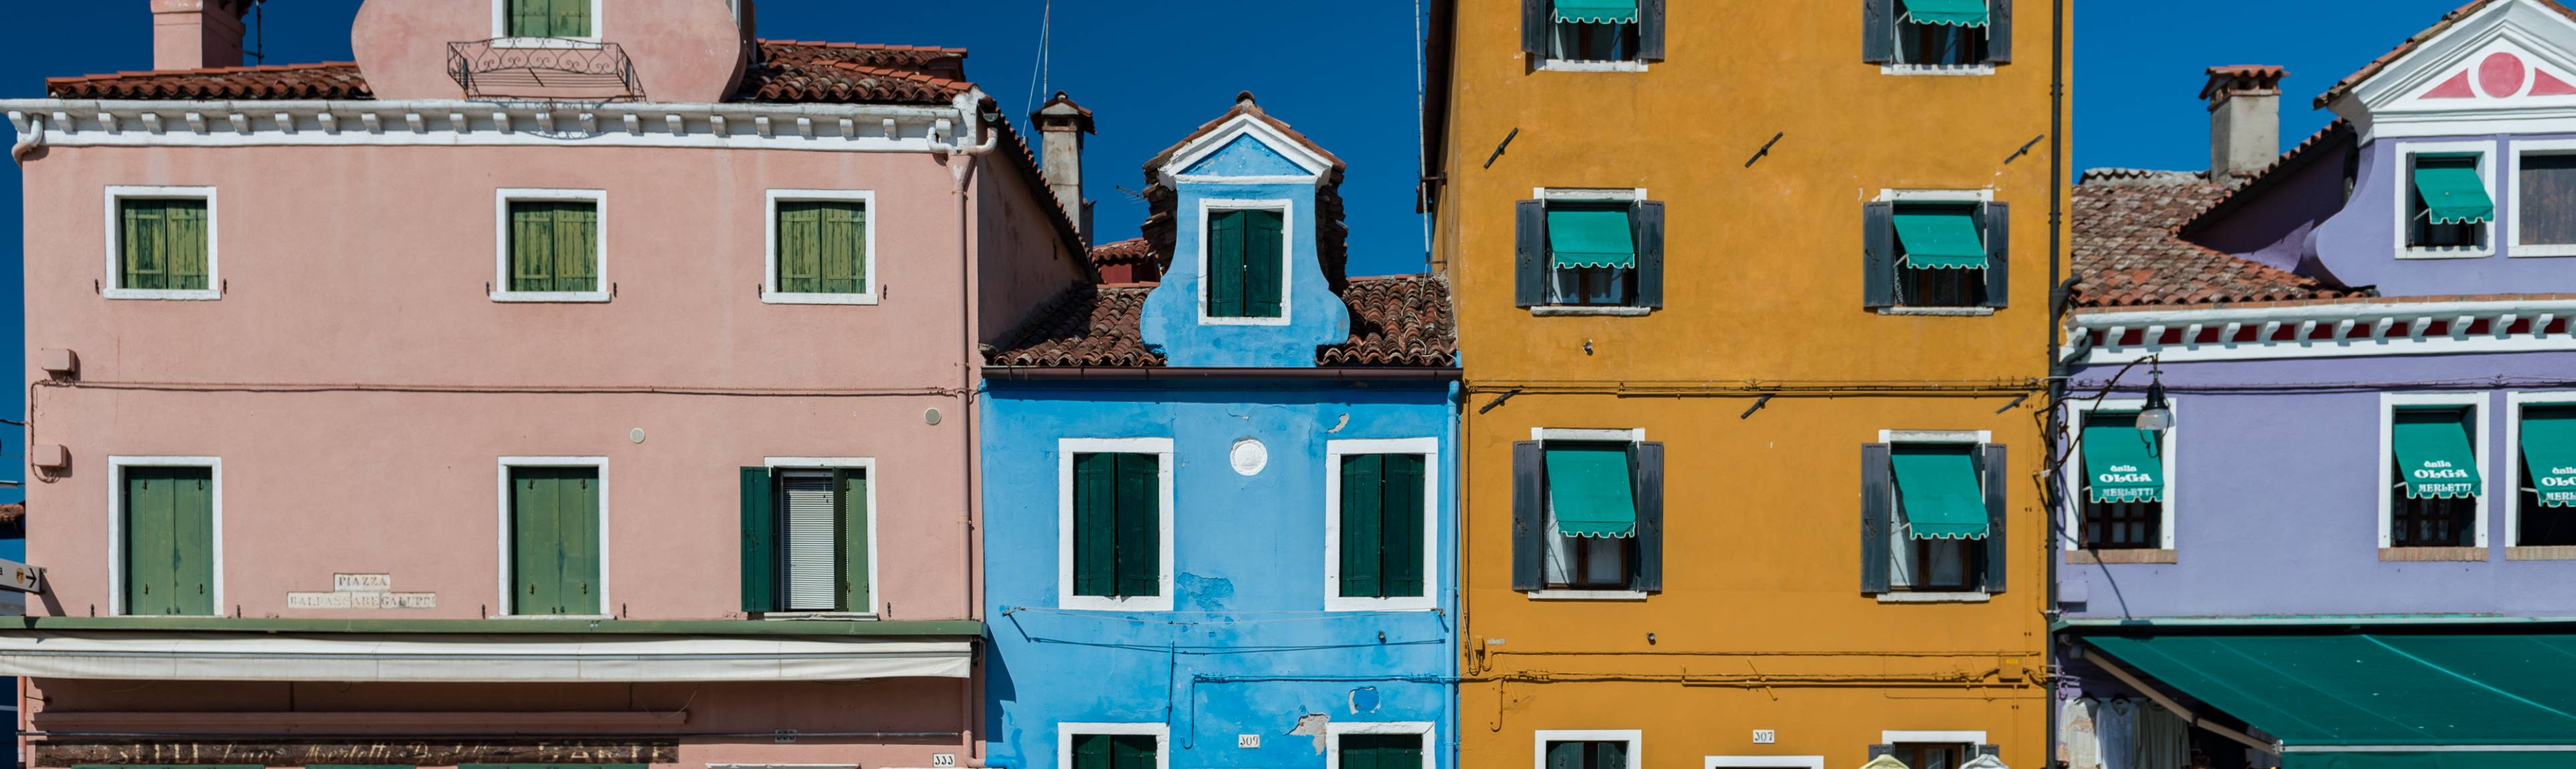 Colorful buildings in a row on the island of Burano near Venice